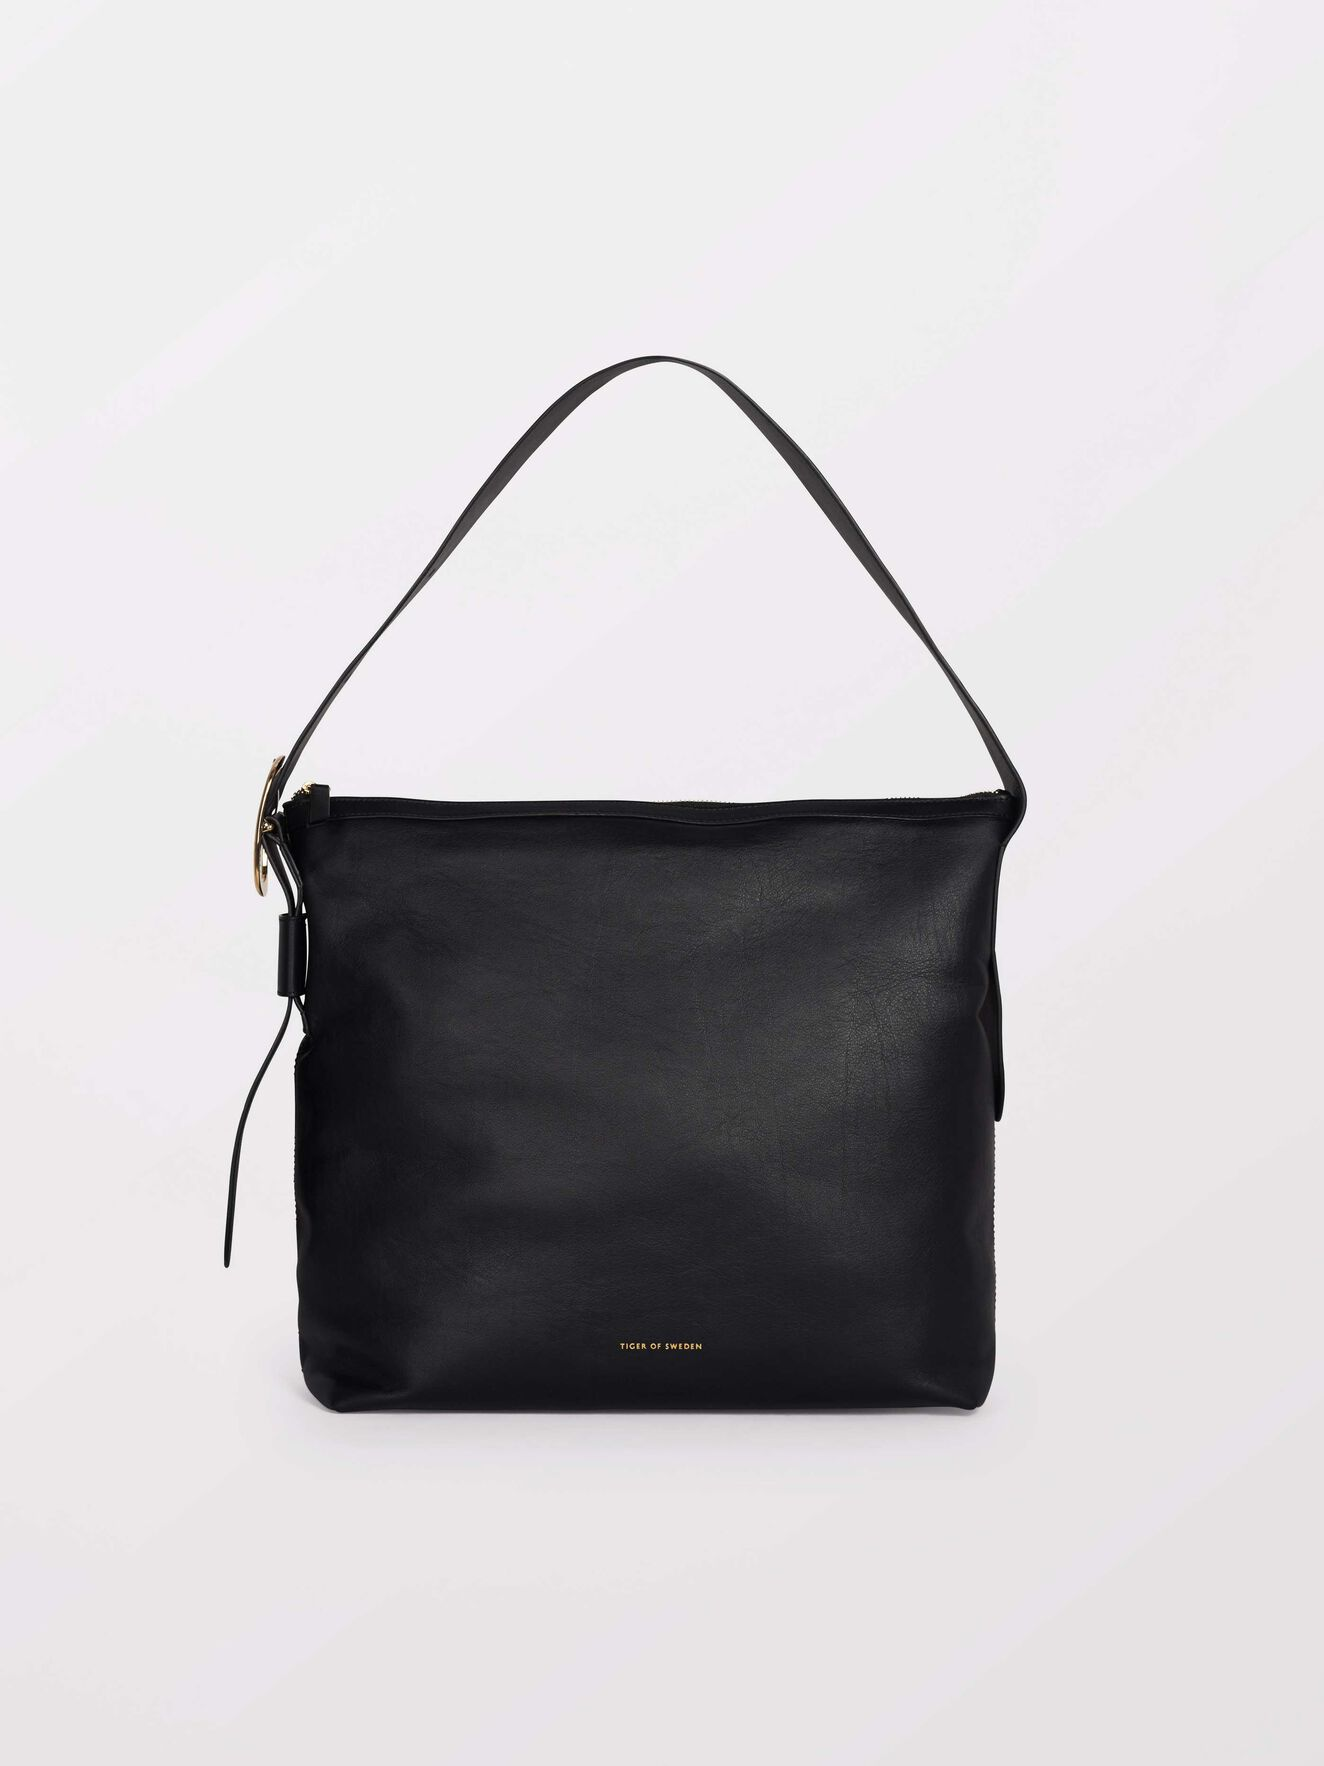 Bamosa Bag in Black from Tiger of Sweden